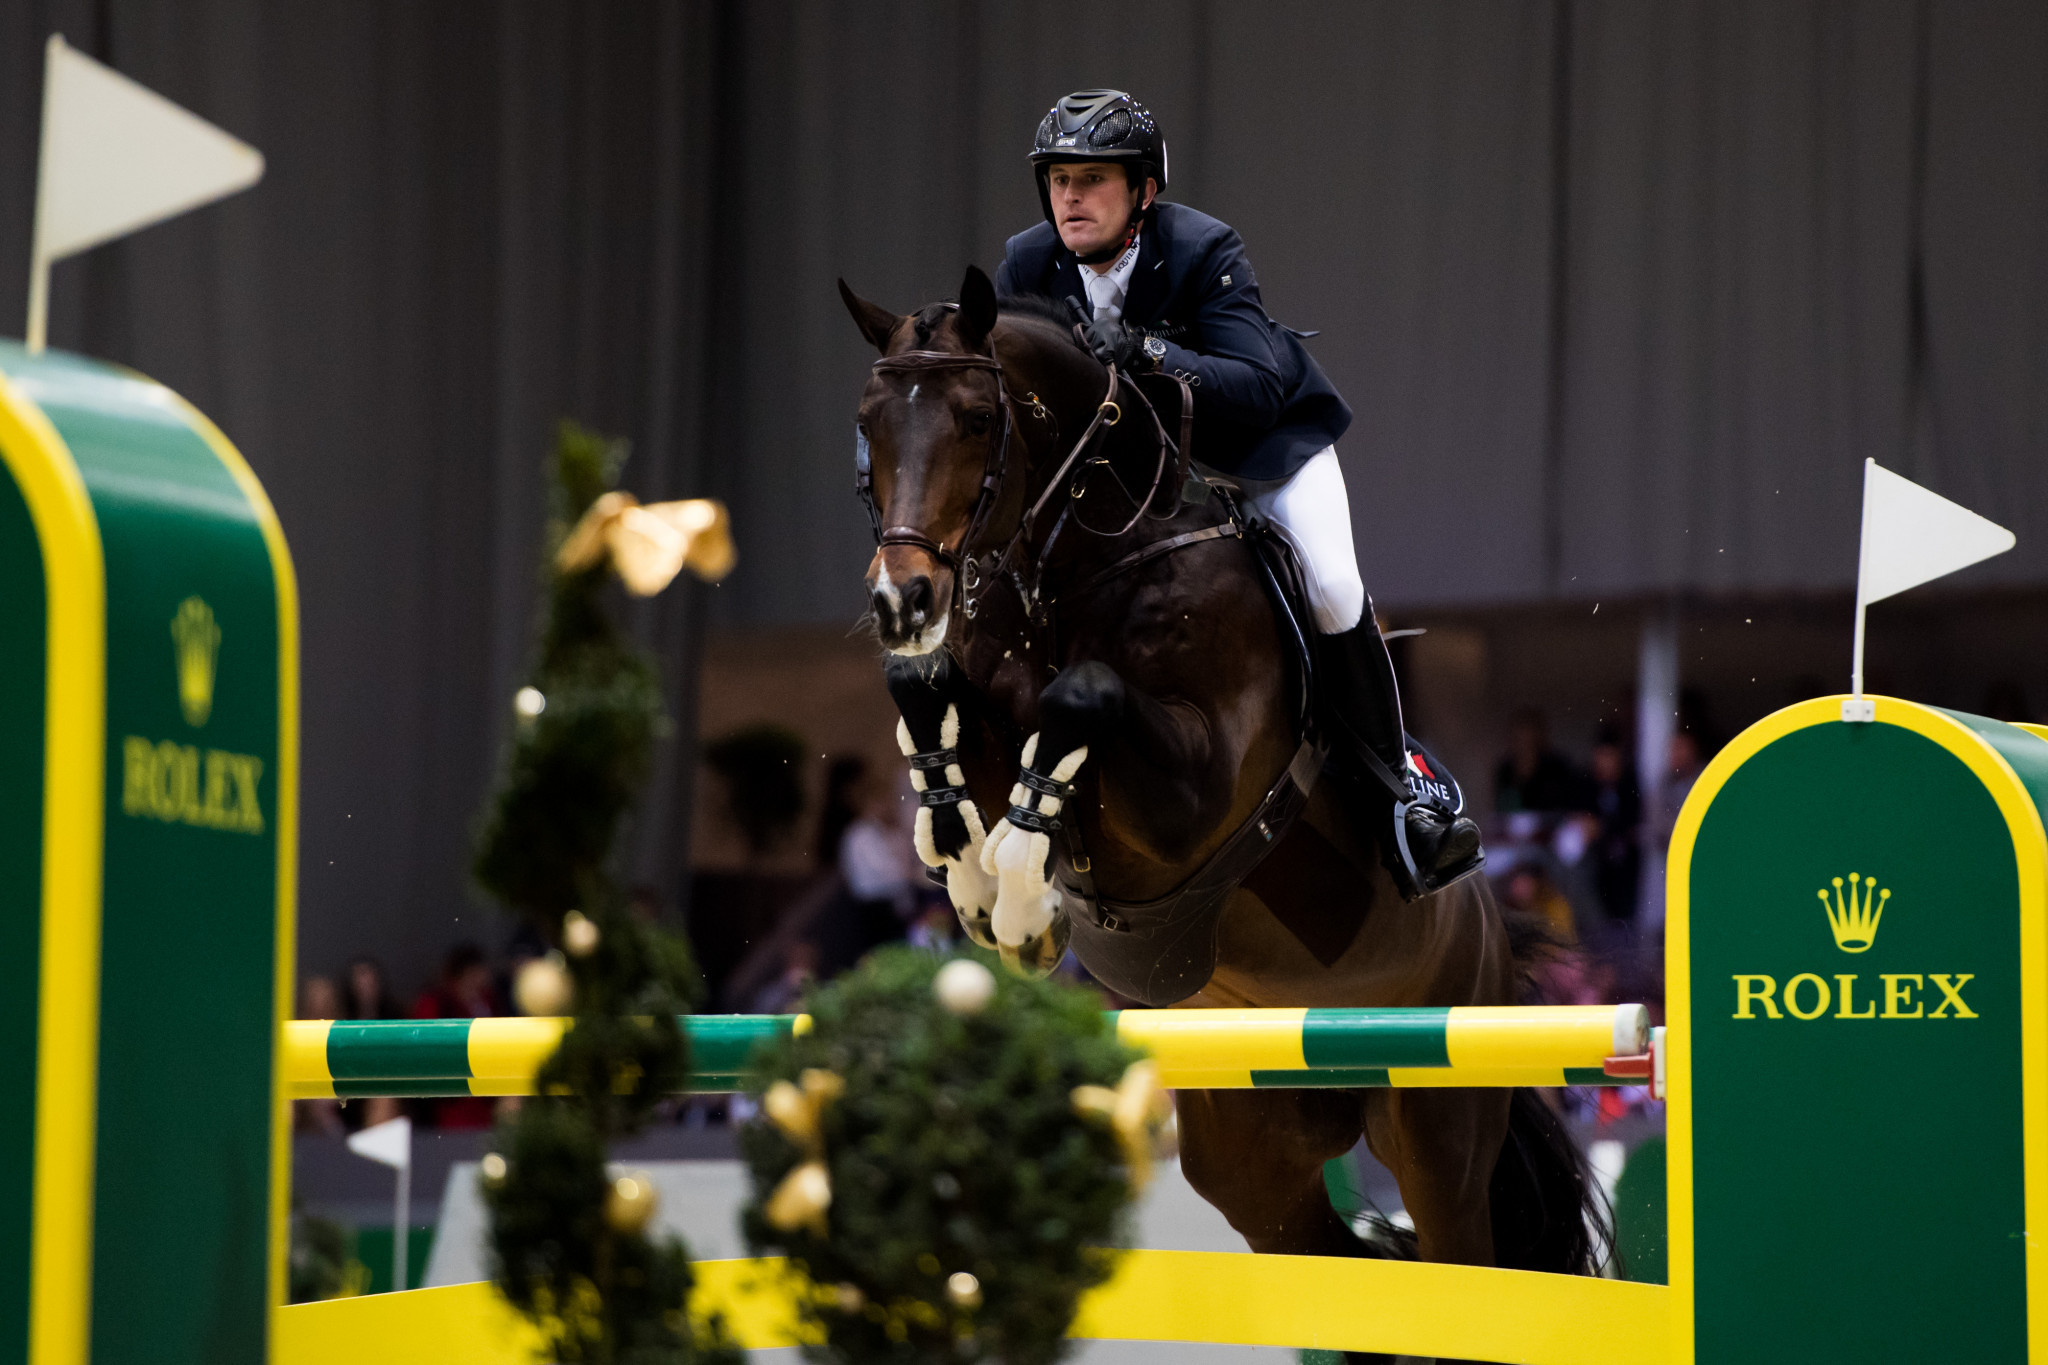 Ireland's Kenny claims jumping win at World Equestrian Festival in Aachen